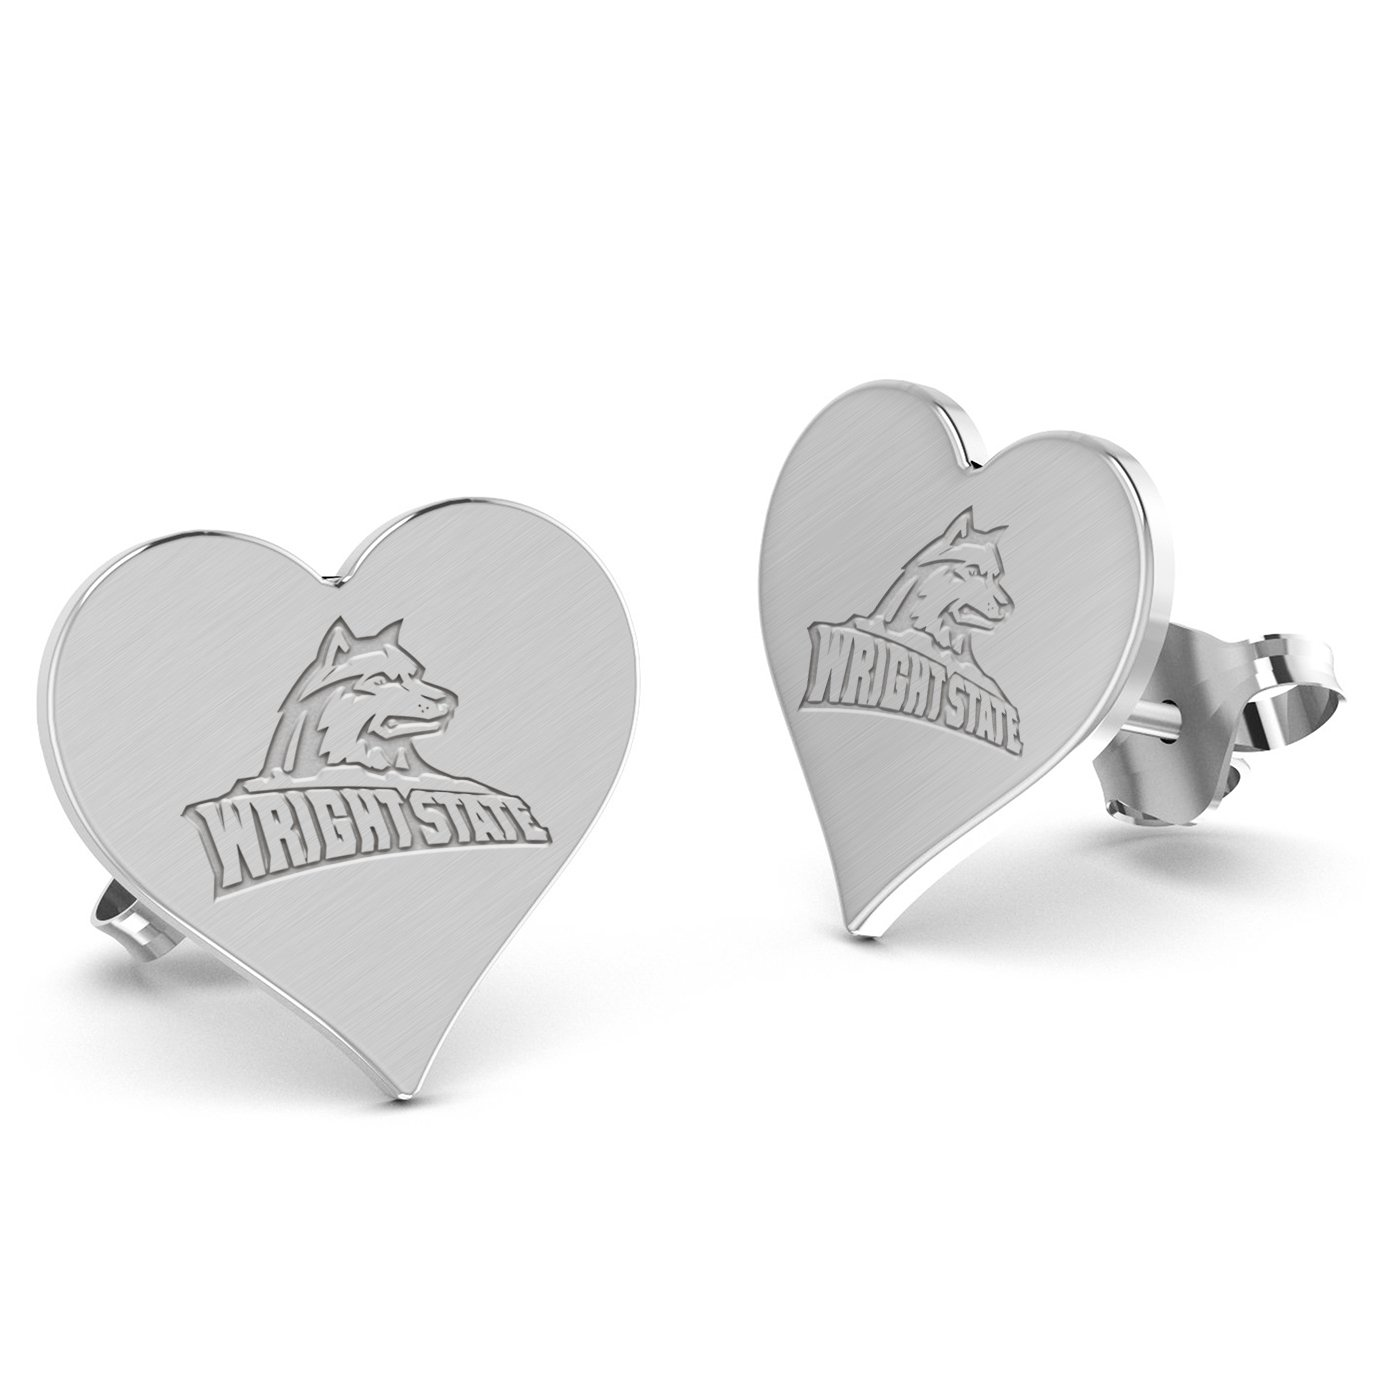 Wright State University Raiders Heart Stud Earring See Image on Model for Size Reference